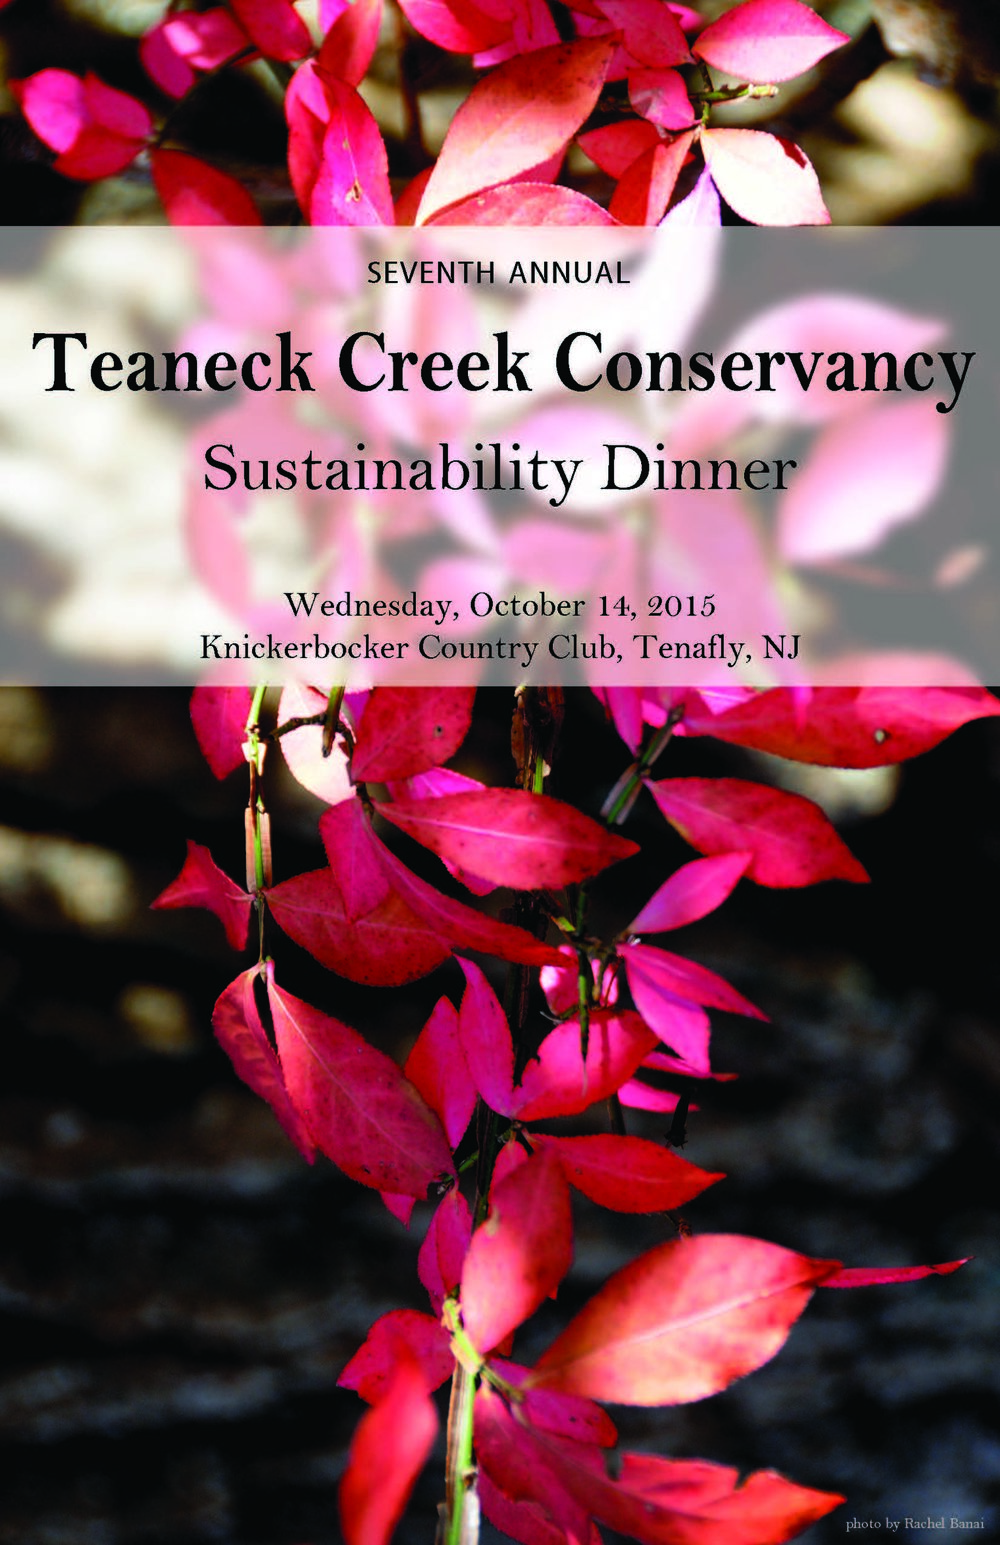 Click the image above to learn more about our 2015 Sustainability Dinner